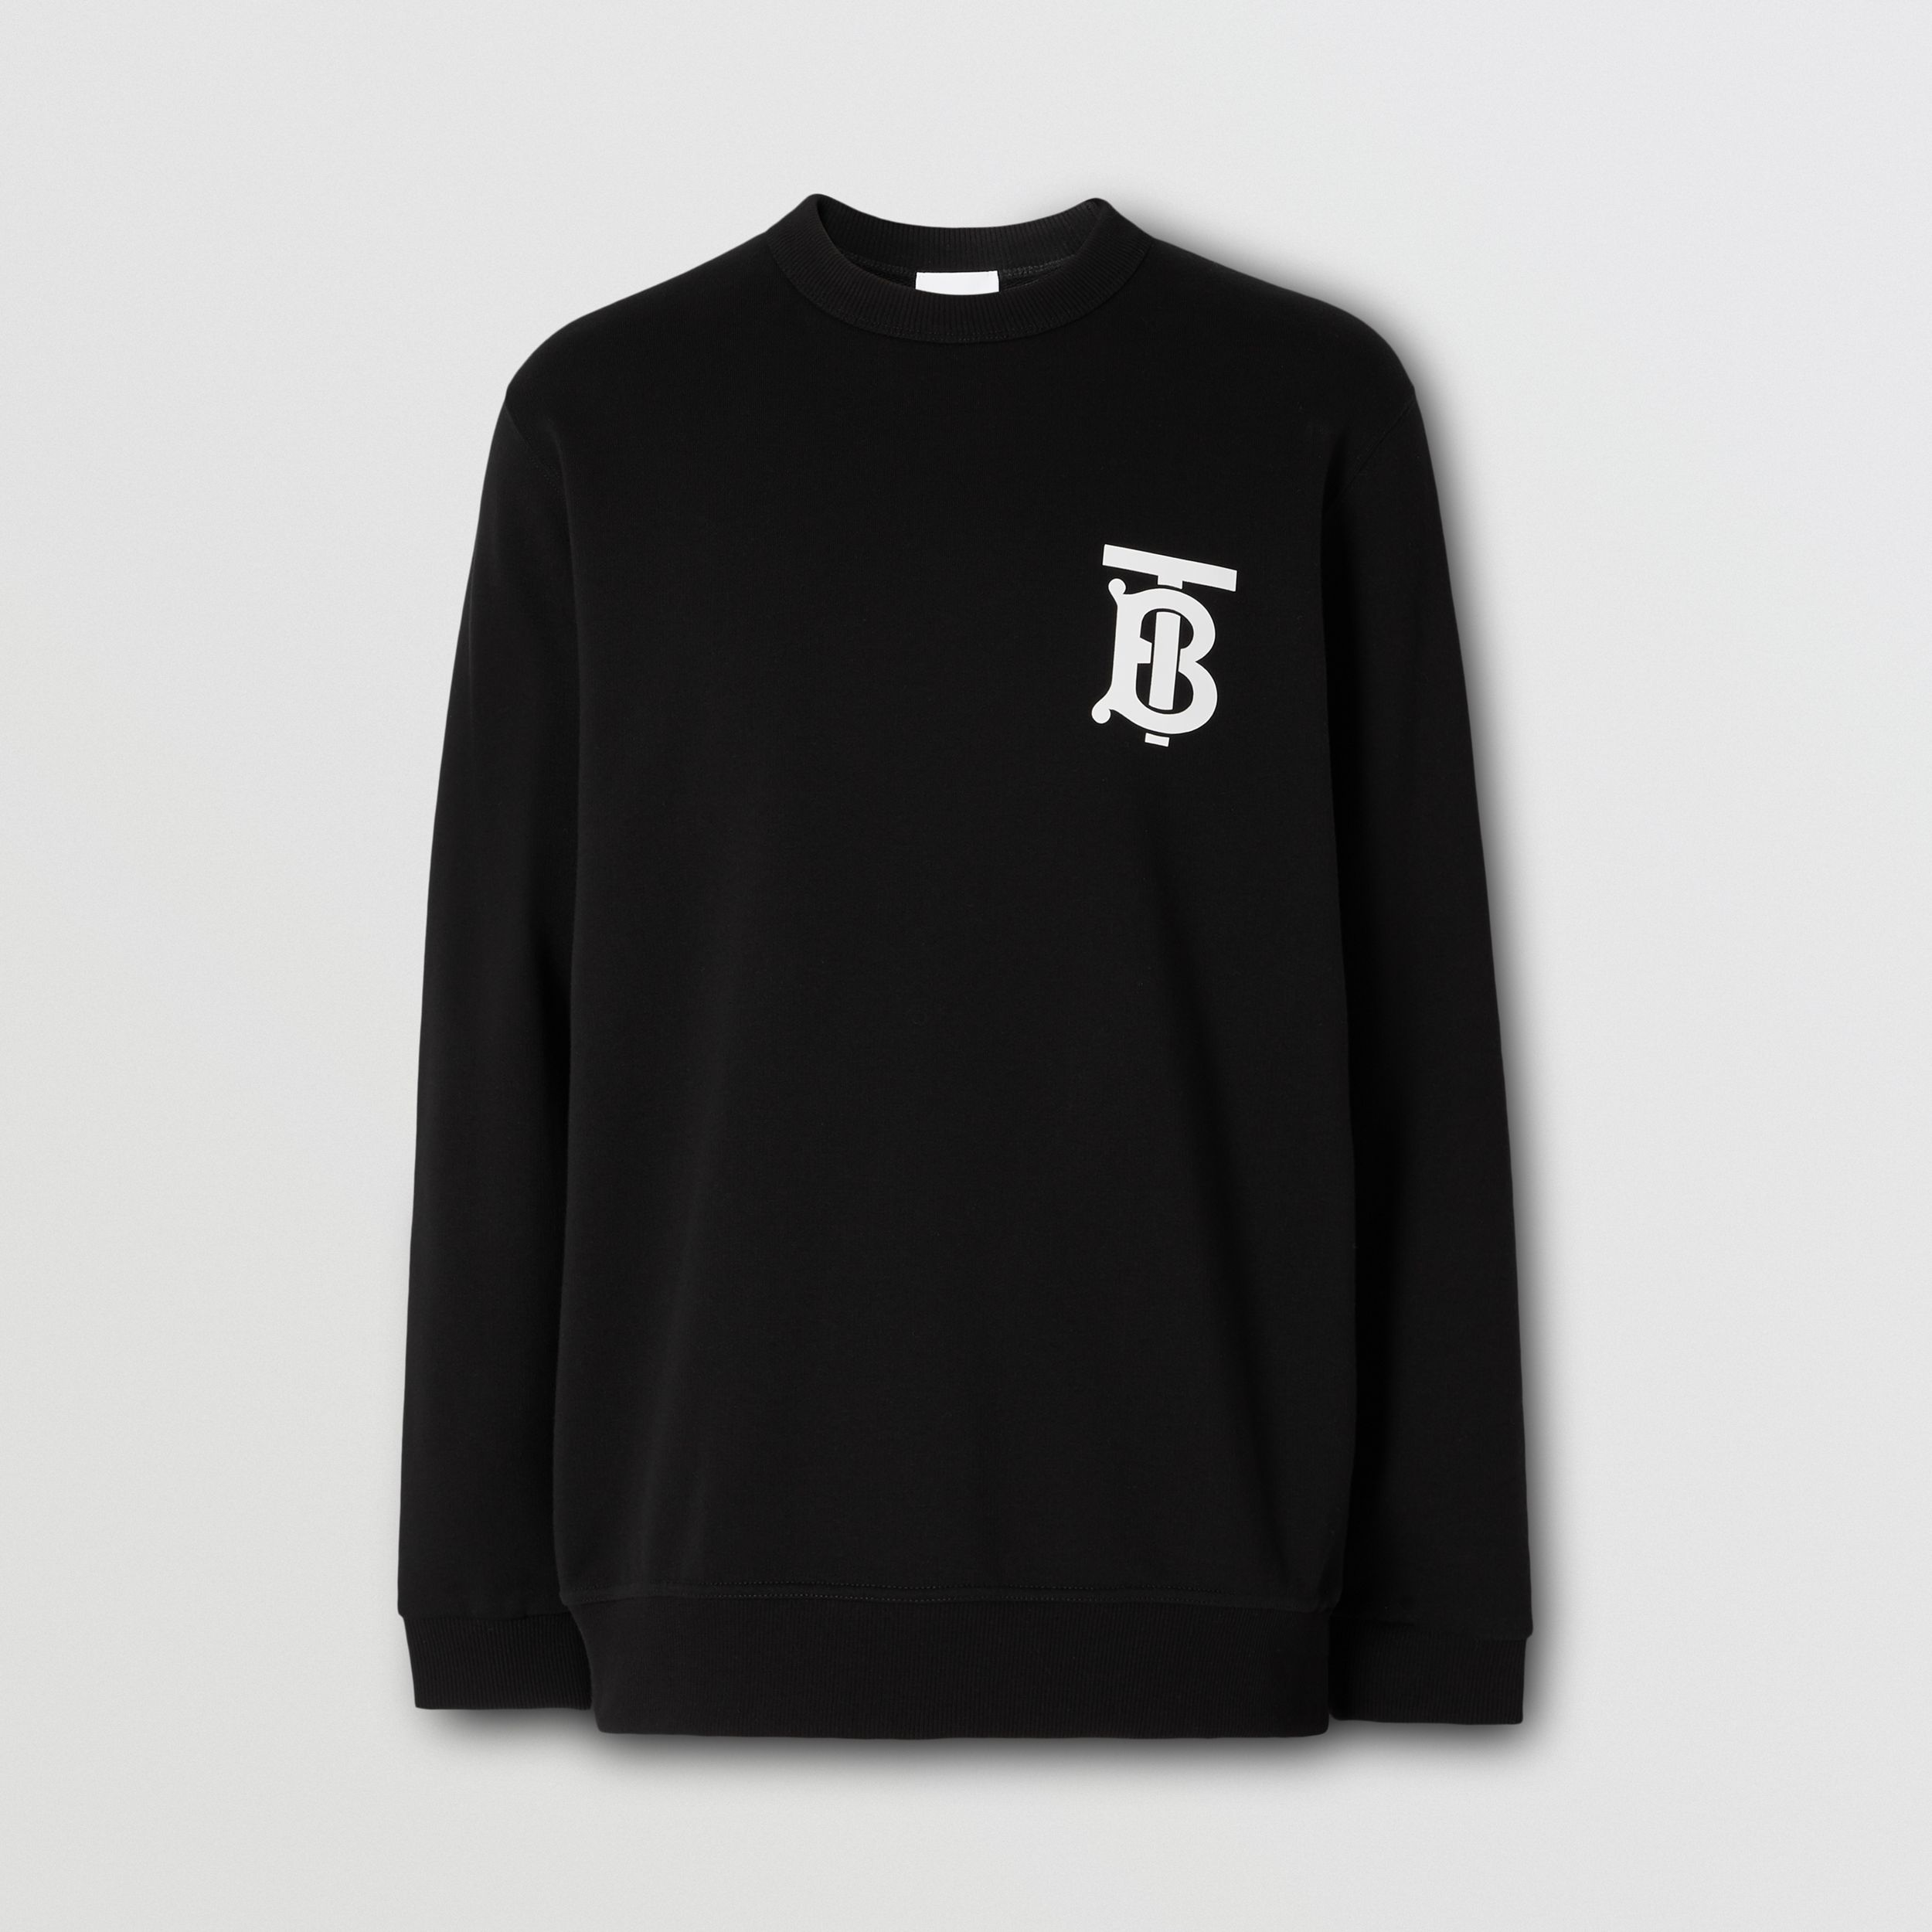 Monogram Motif Cotton Sweatshirt in Black - Men | Burberry Australia - 4